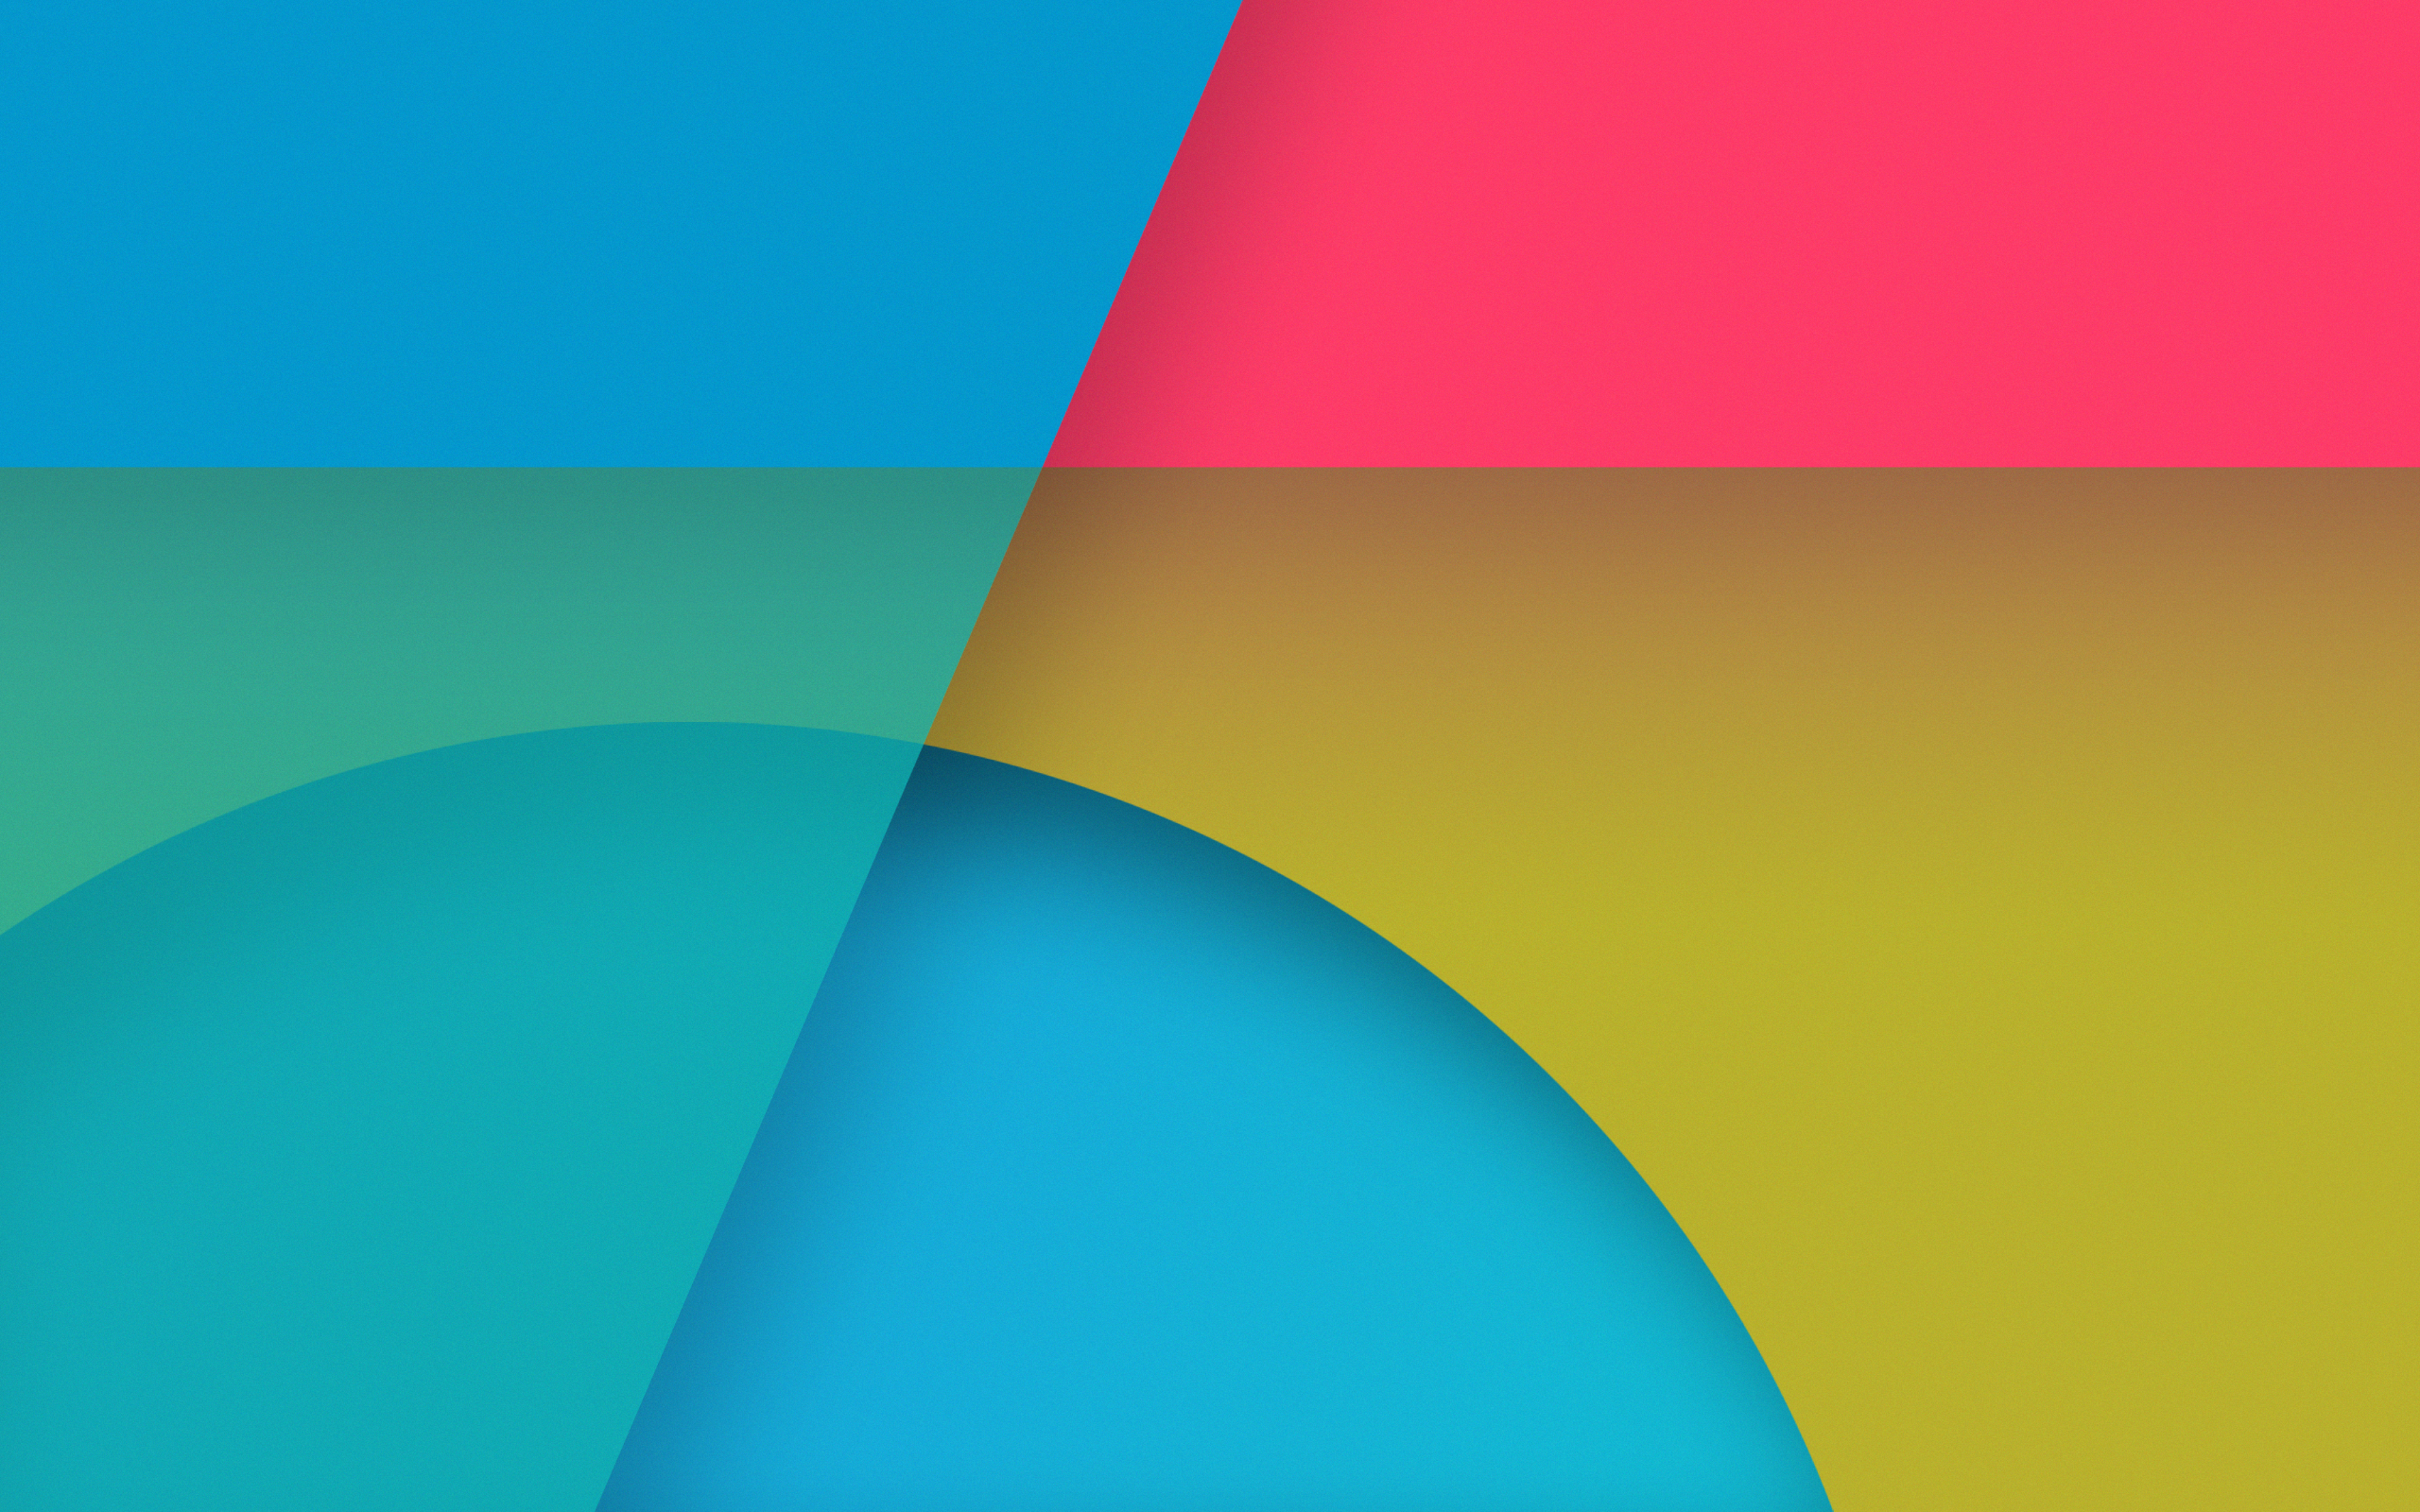 download nexus 5 android 4 4 kitkat stock background wallpapers